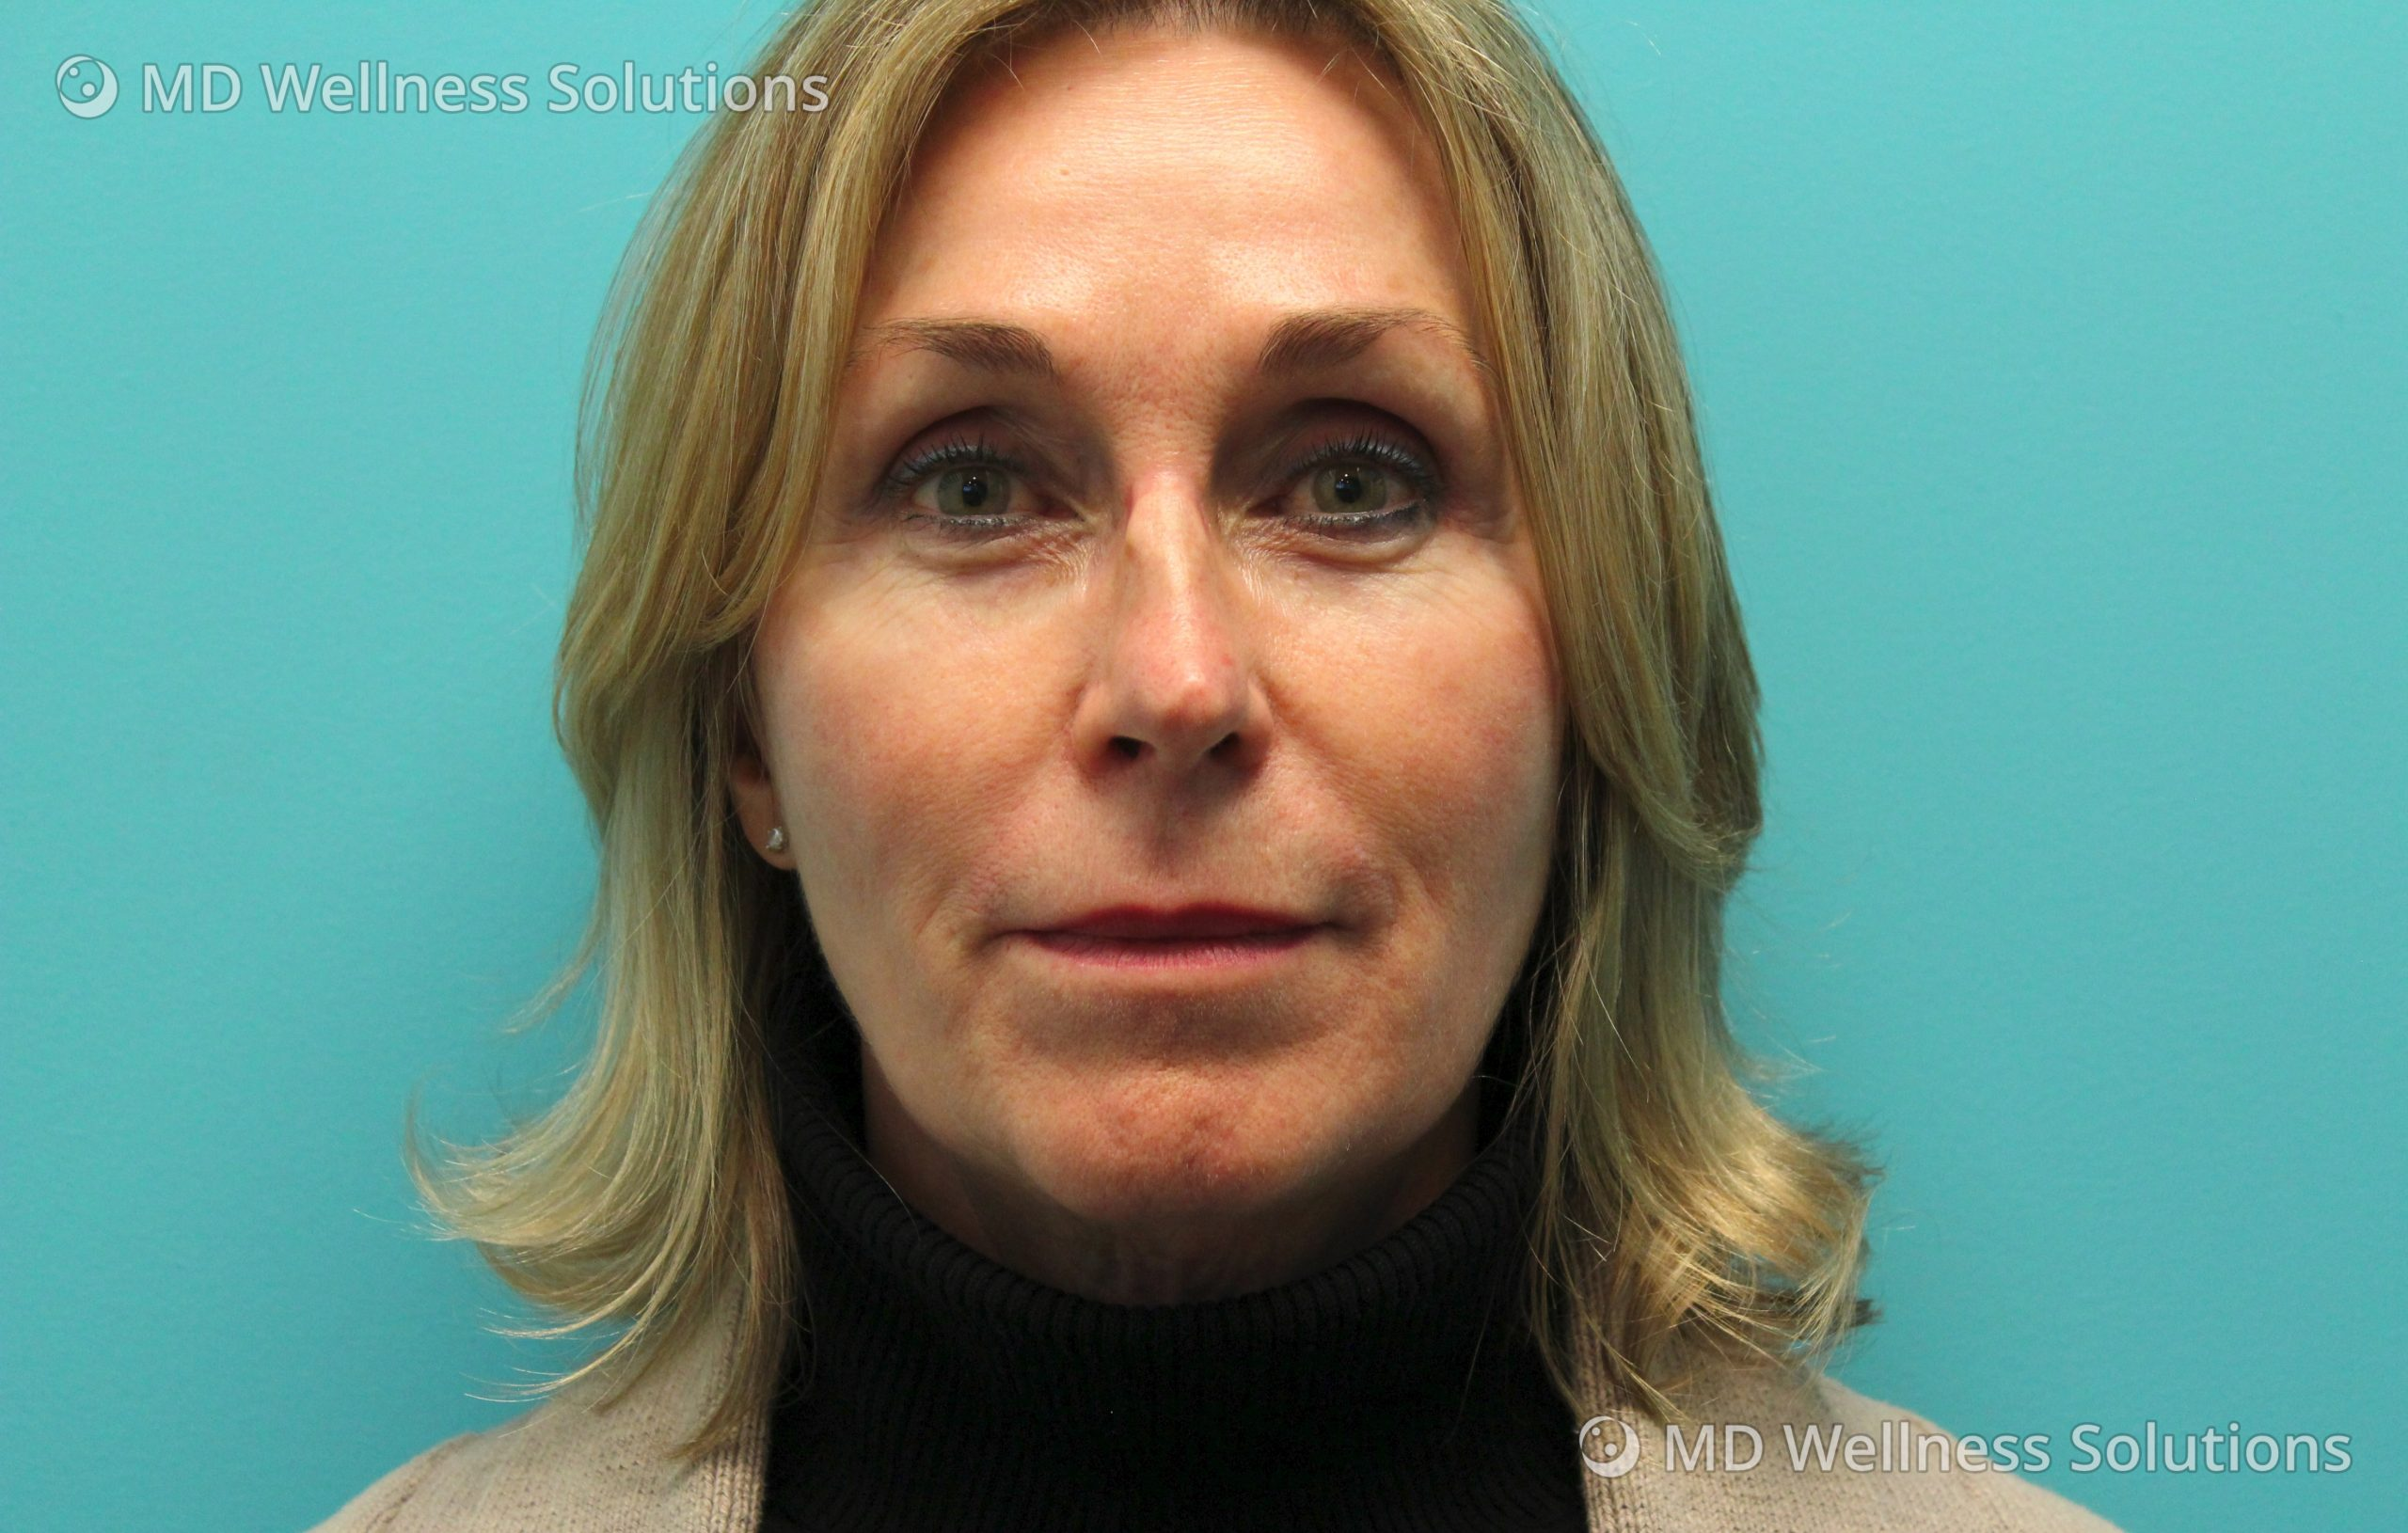 65-74 year old woman before dermal filler treatment